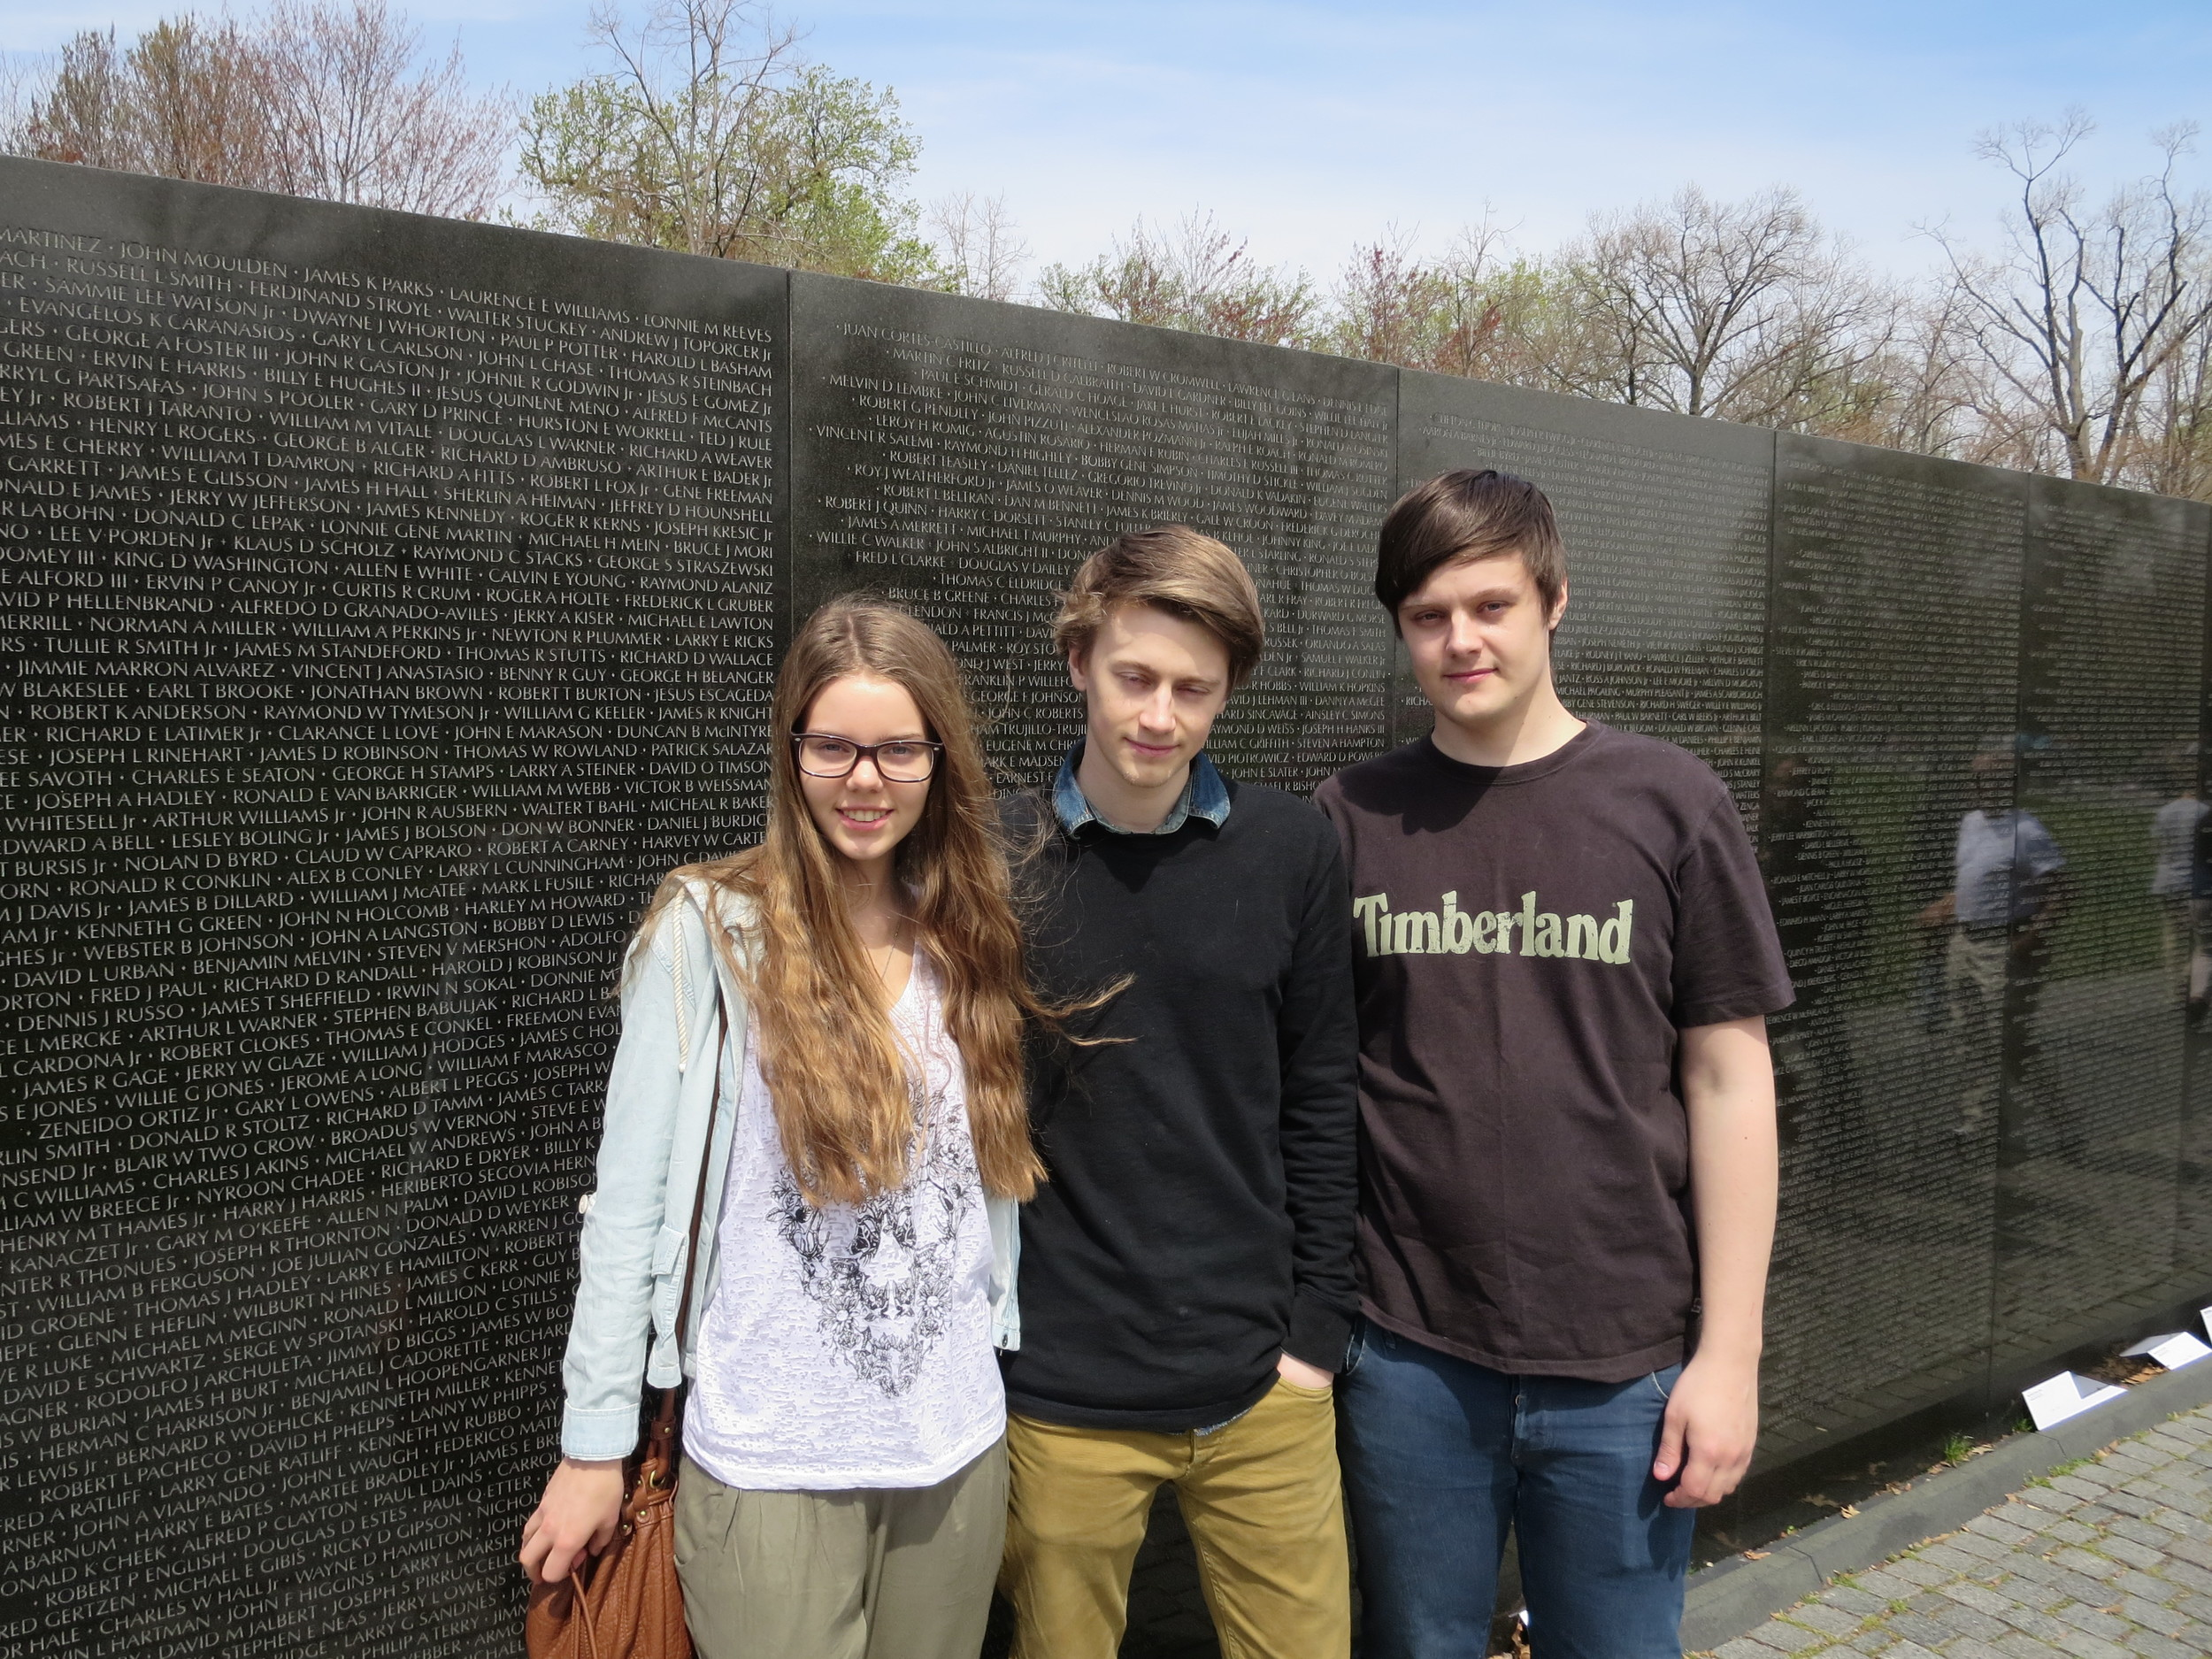 By the Vietnam Memorial Wall - really depressing to see all the endless rows of names